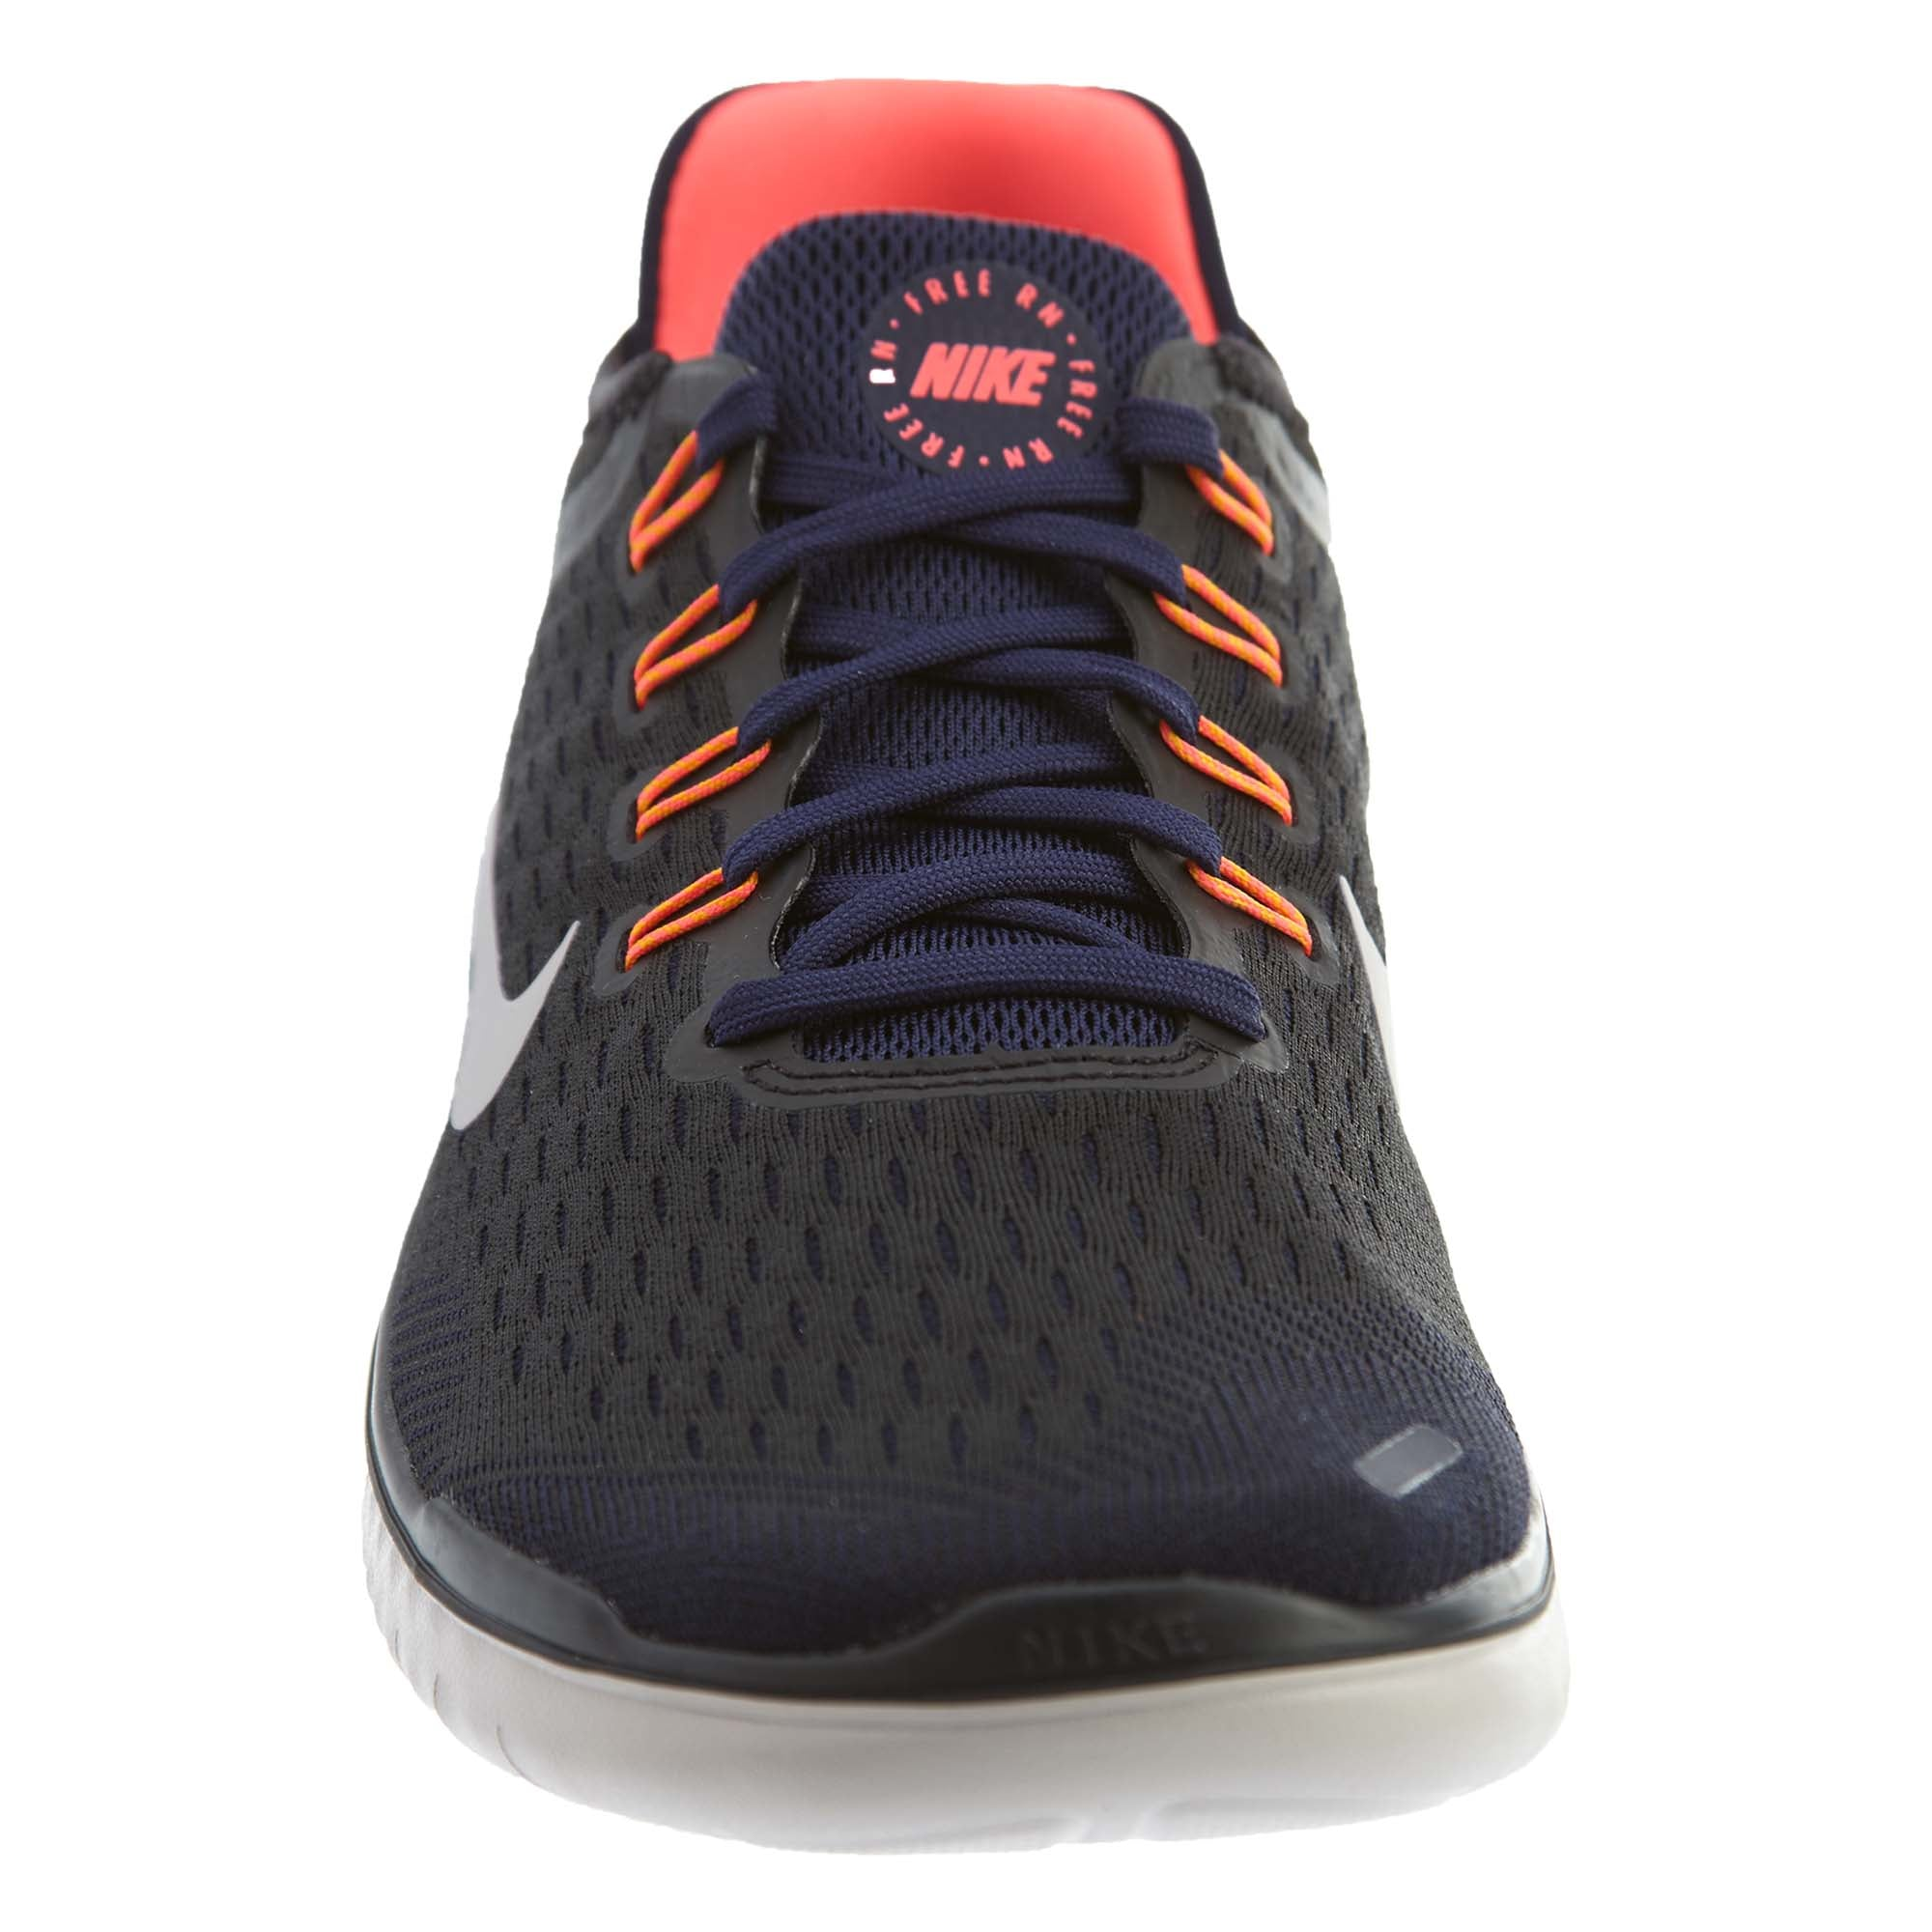 competitive price aac7e a0f34 Nike Free Rn 2018 Mens Style  942836-010